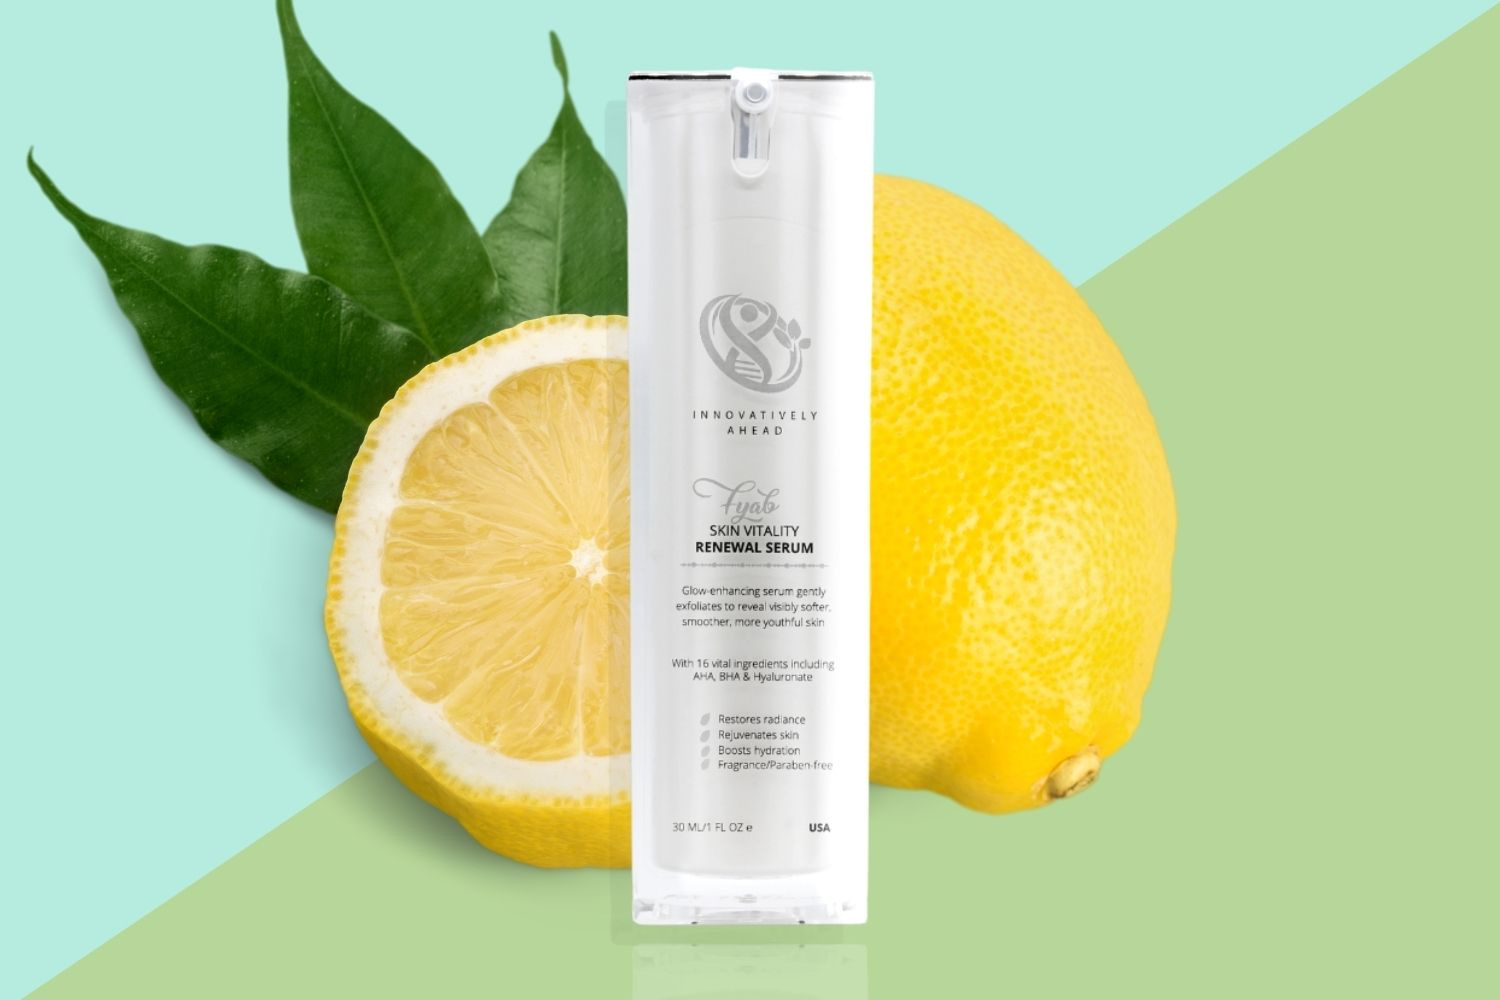 4 Reasons to Add This Renewal Serum to Your Routine